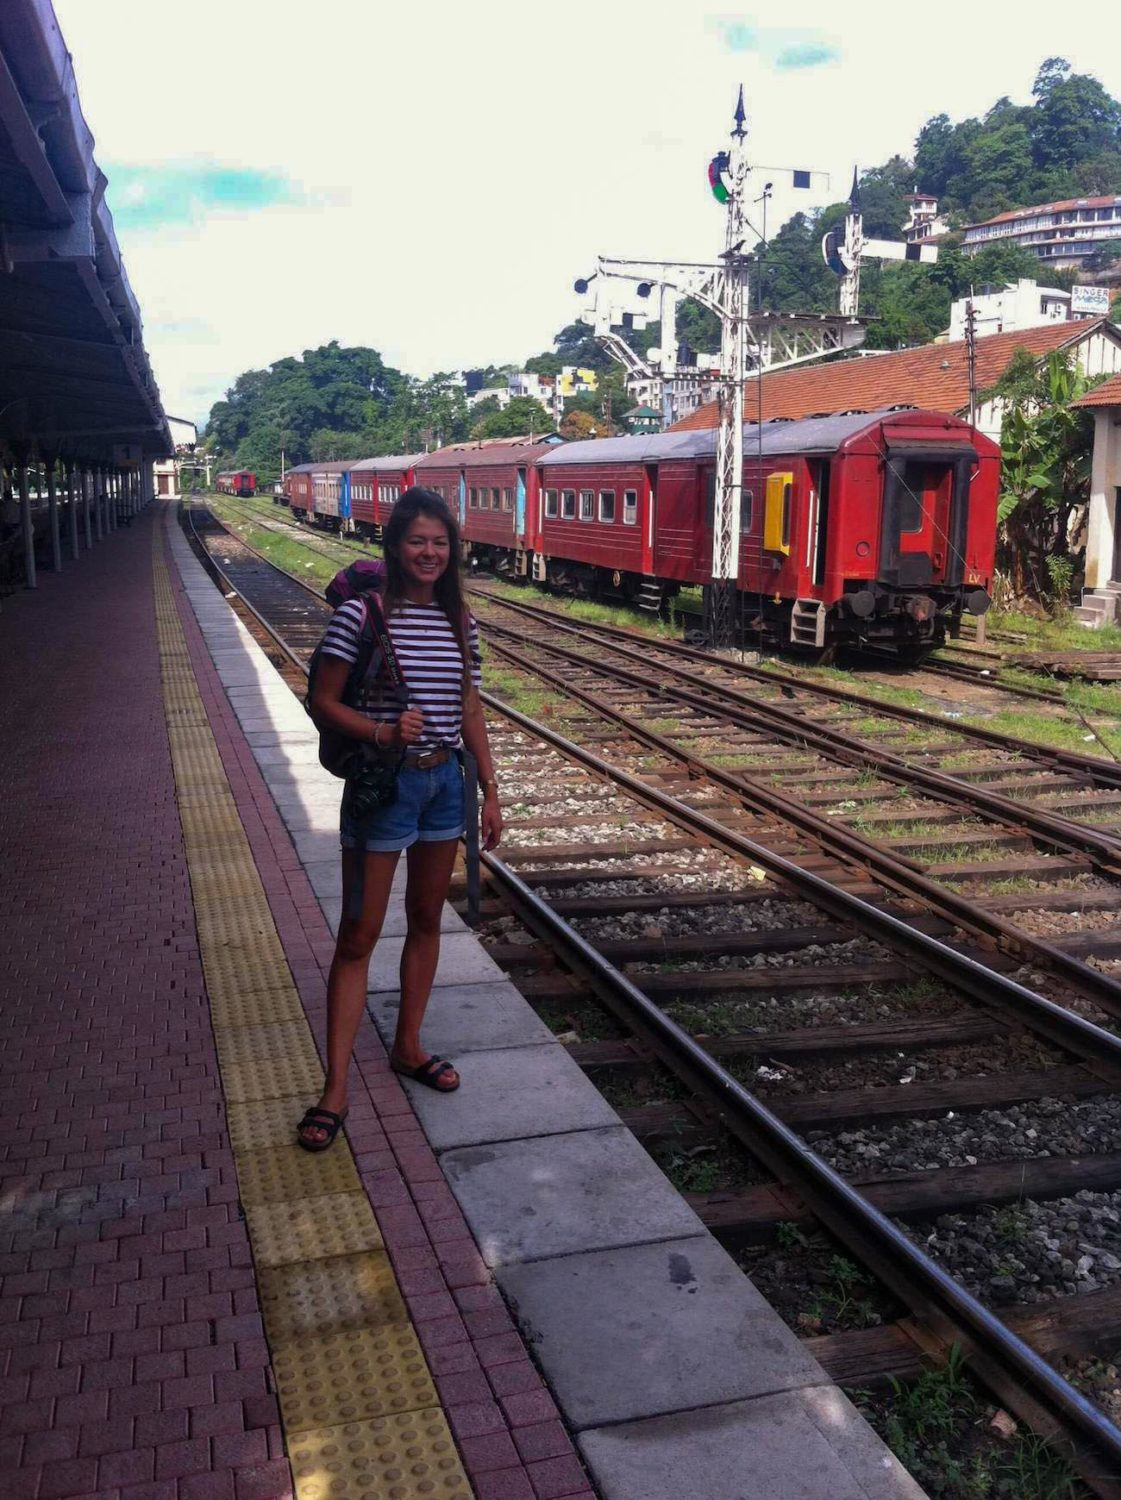 Kim waiting by a train station.